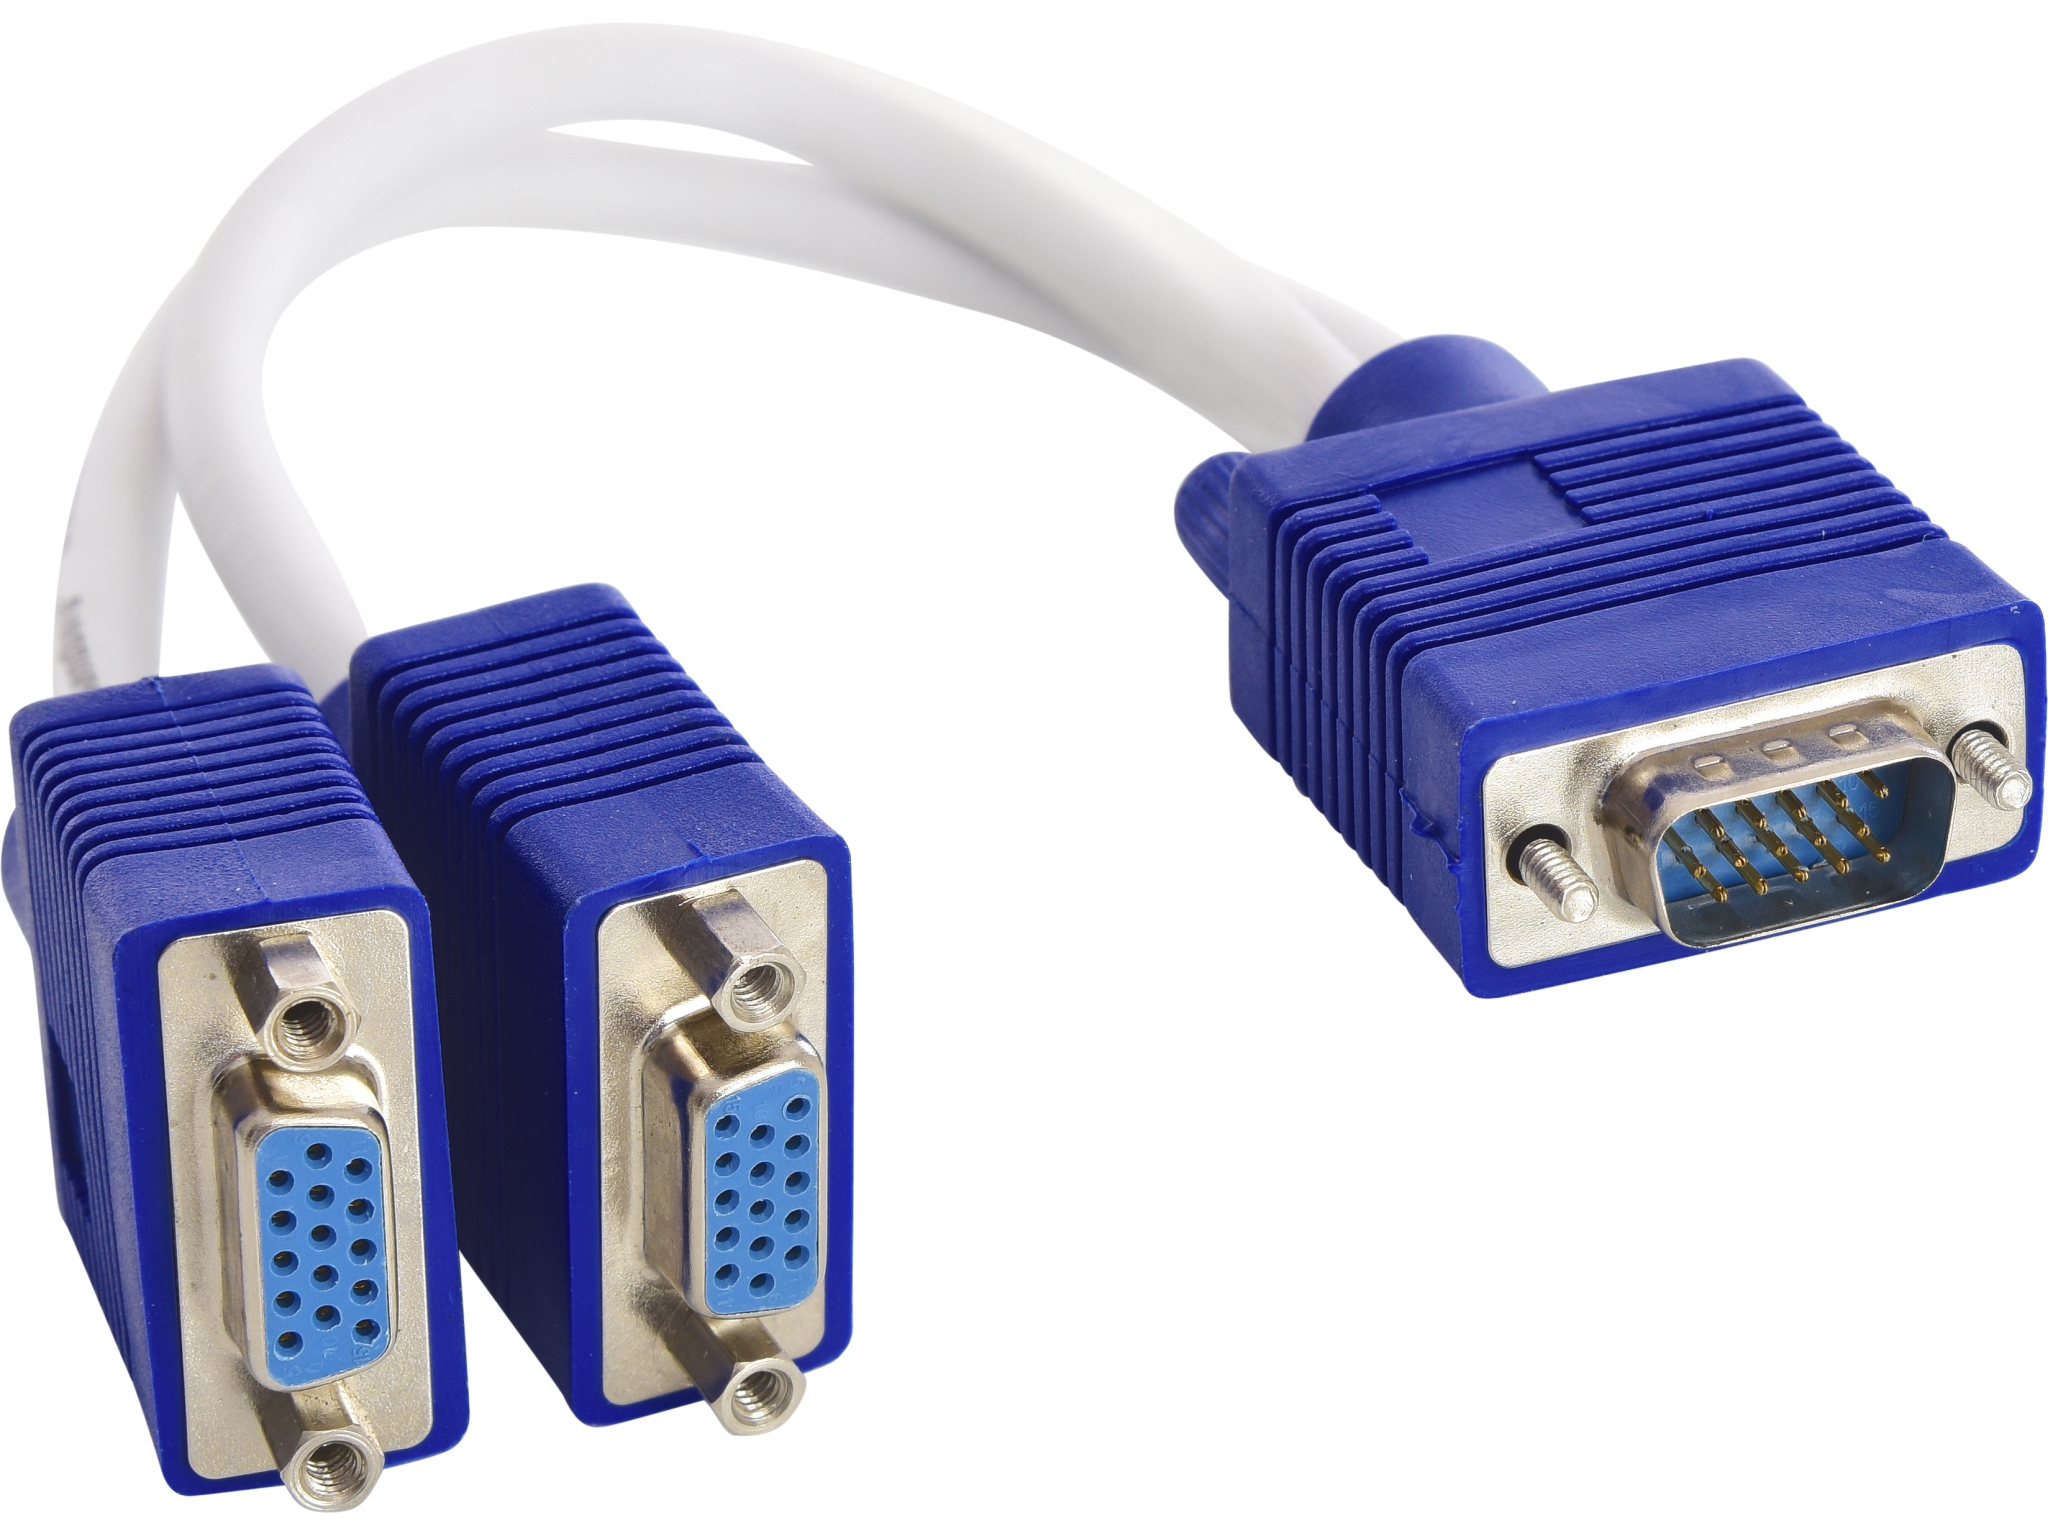 VGA Y-splitter 1 to 2, passive